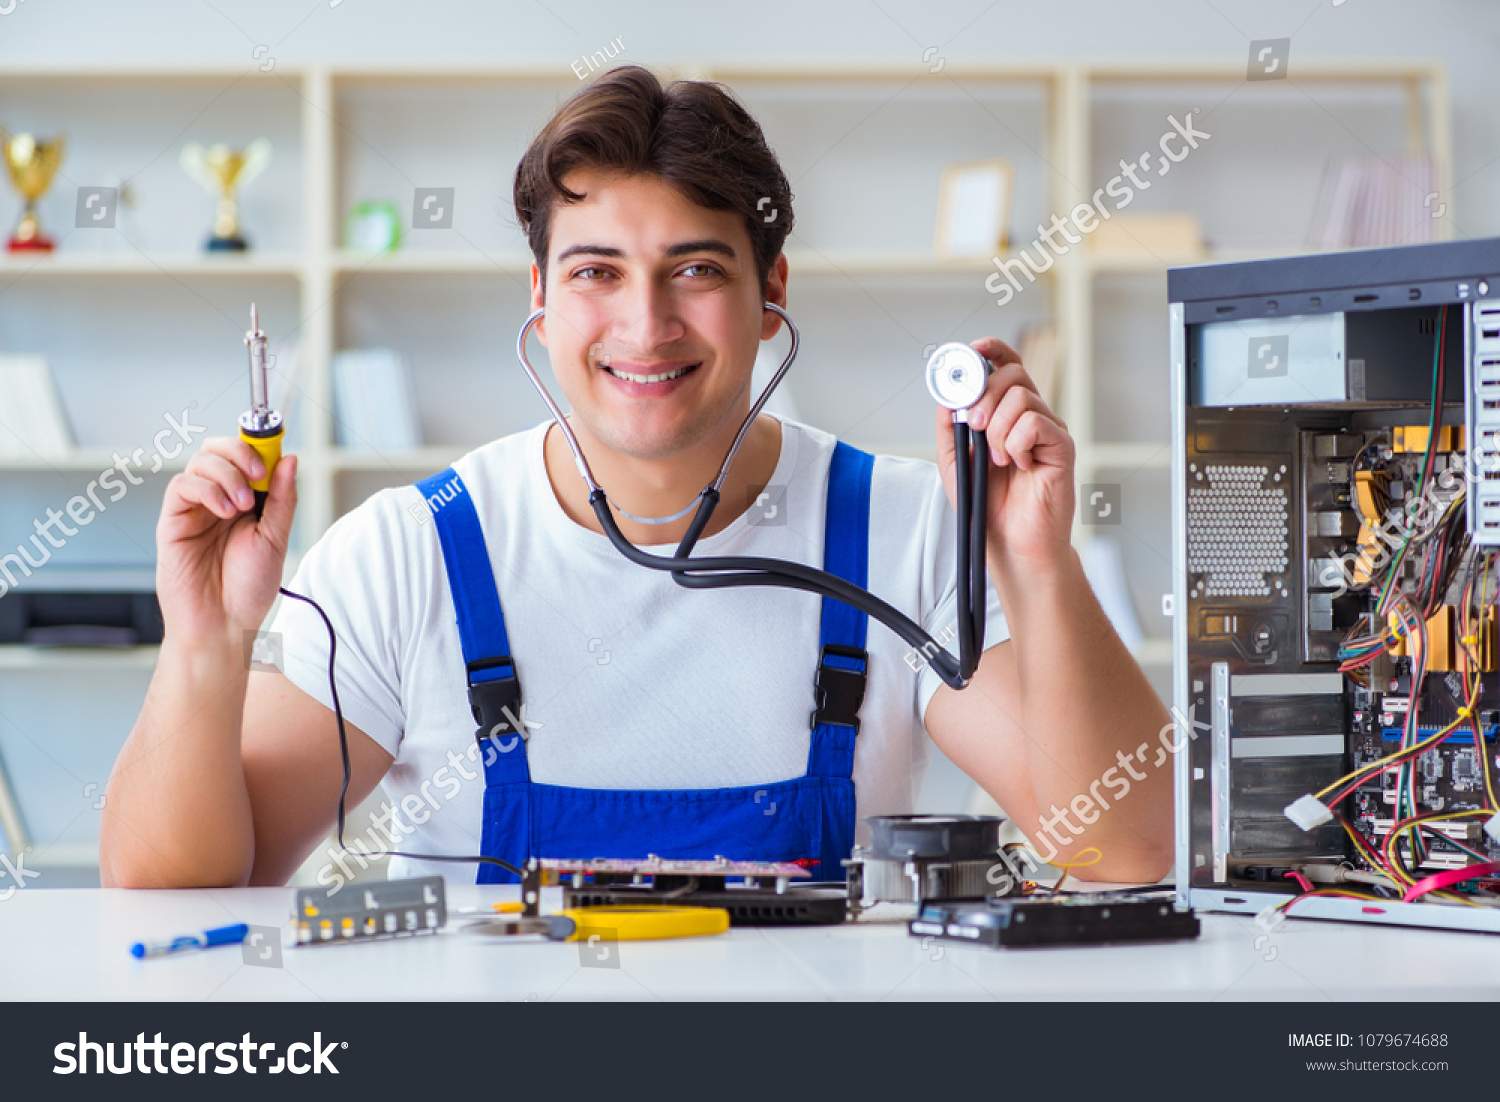 Repair Fixing Computer Hardware Repair Fixing Concept By Stock Photo Edit Now